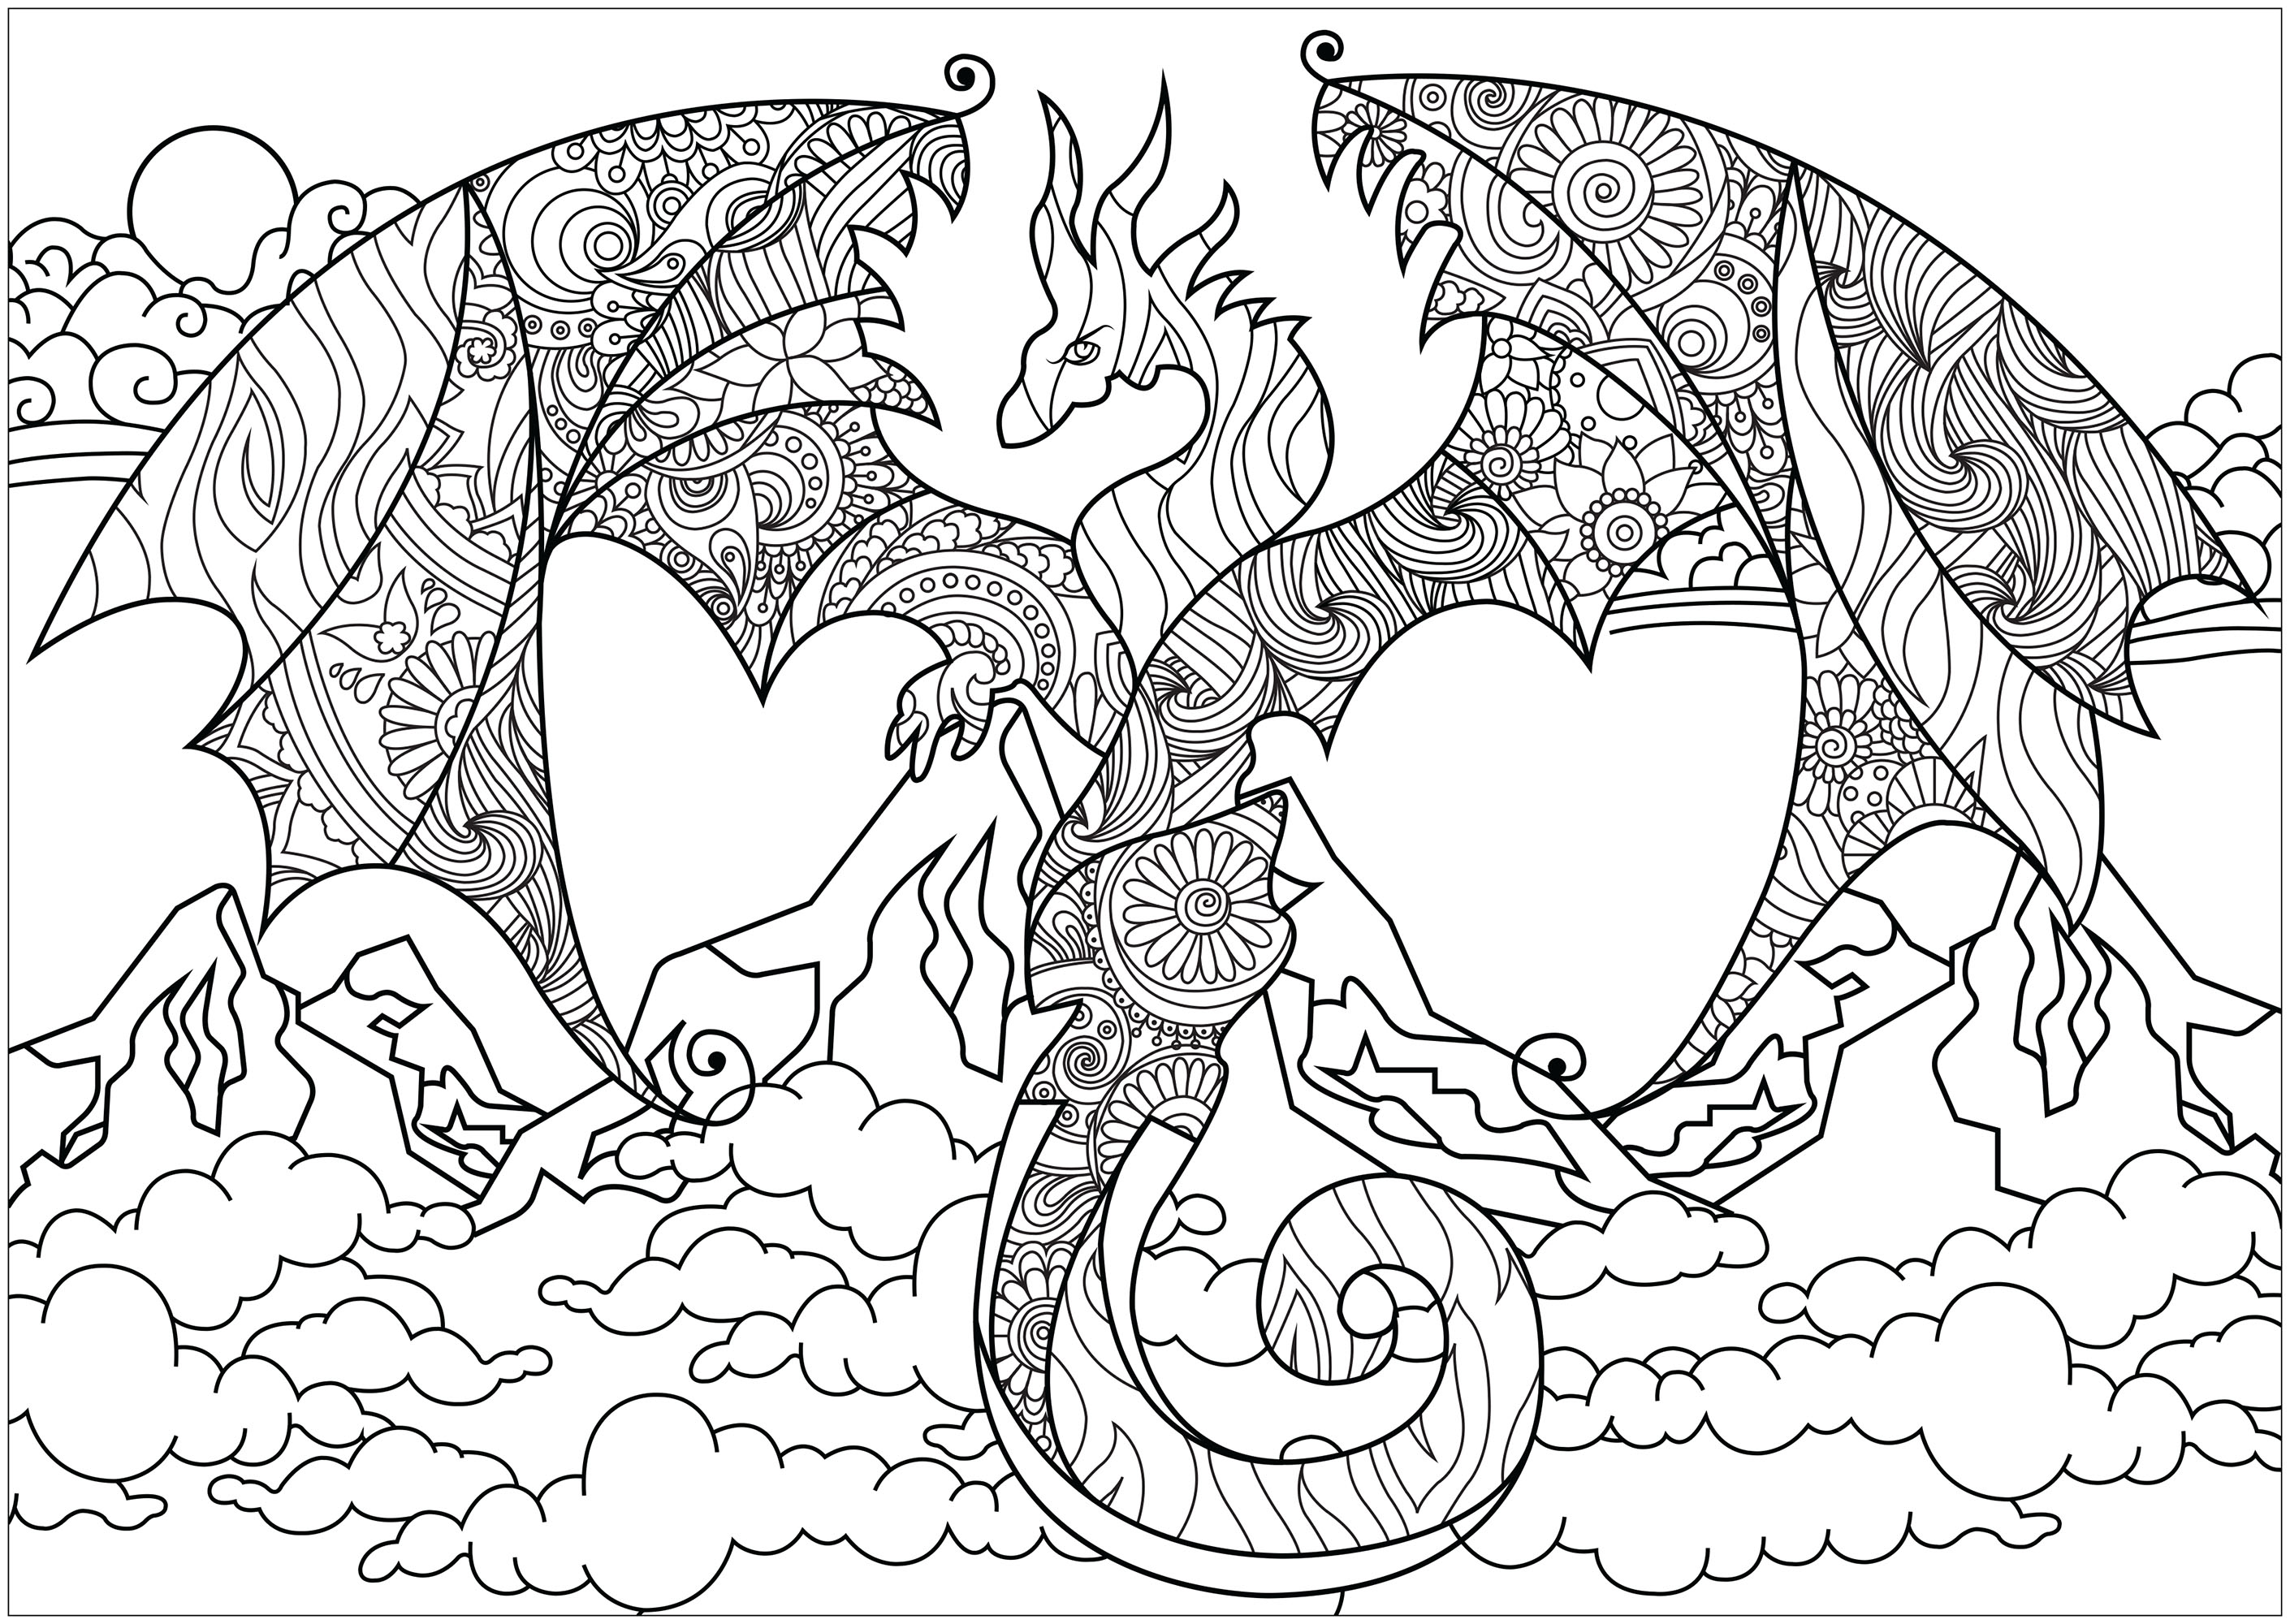 Dragon des montagnes dragons coloriages difficiles - Coloriages de dragons ...